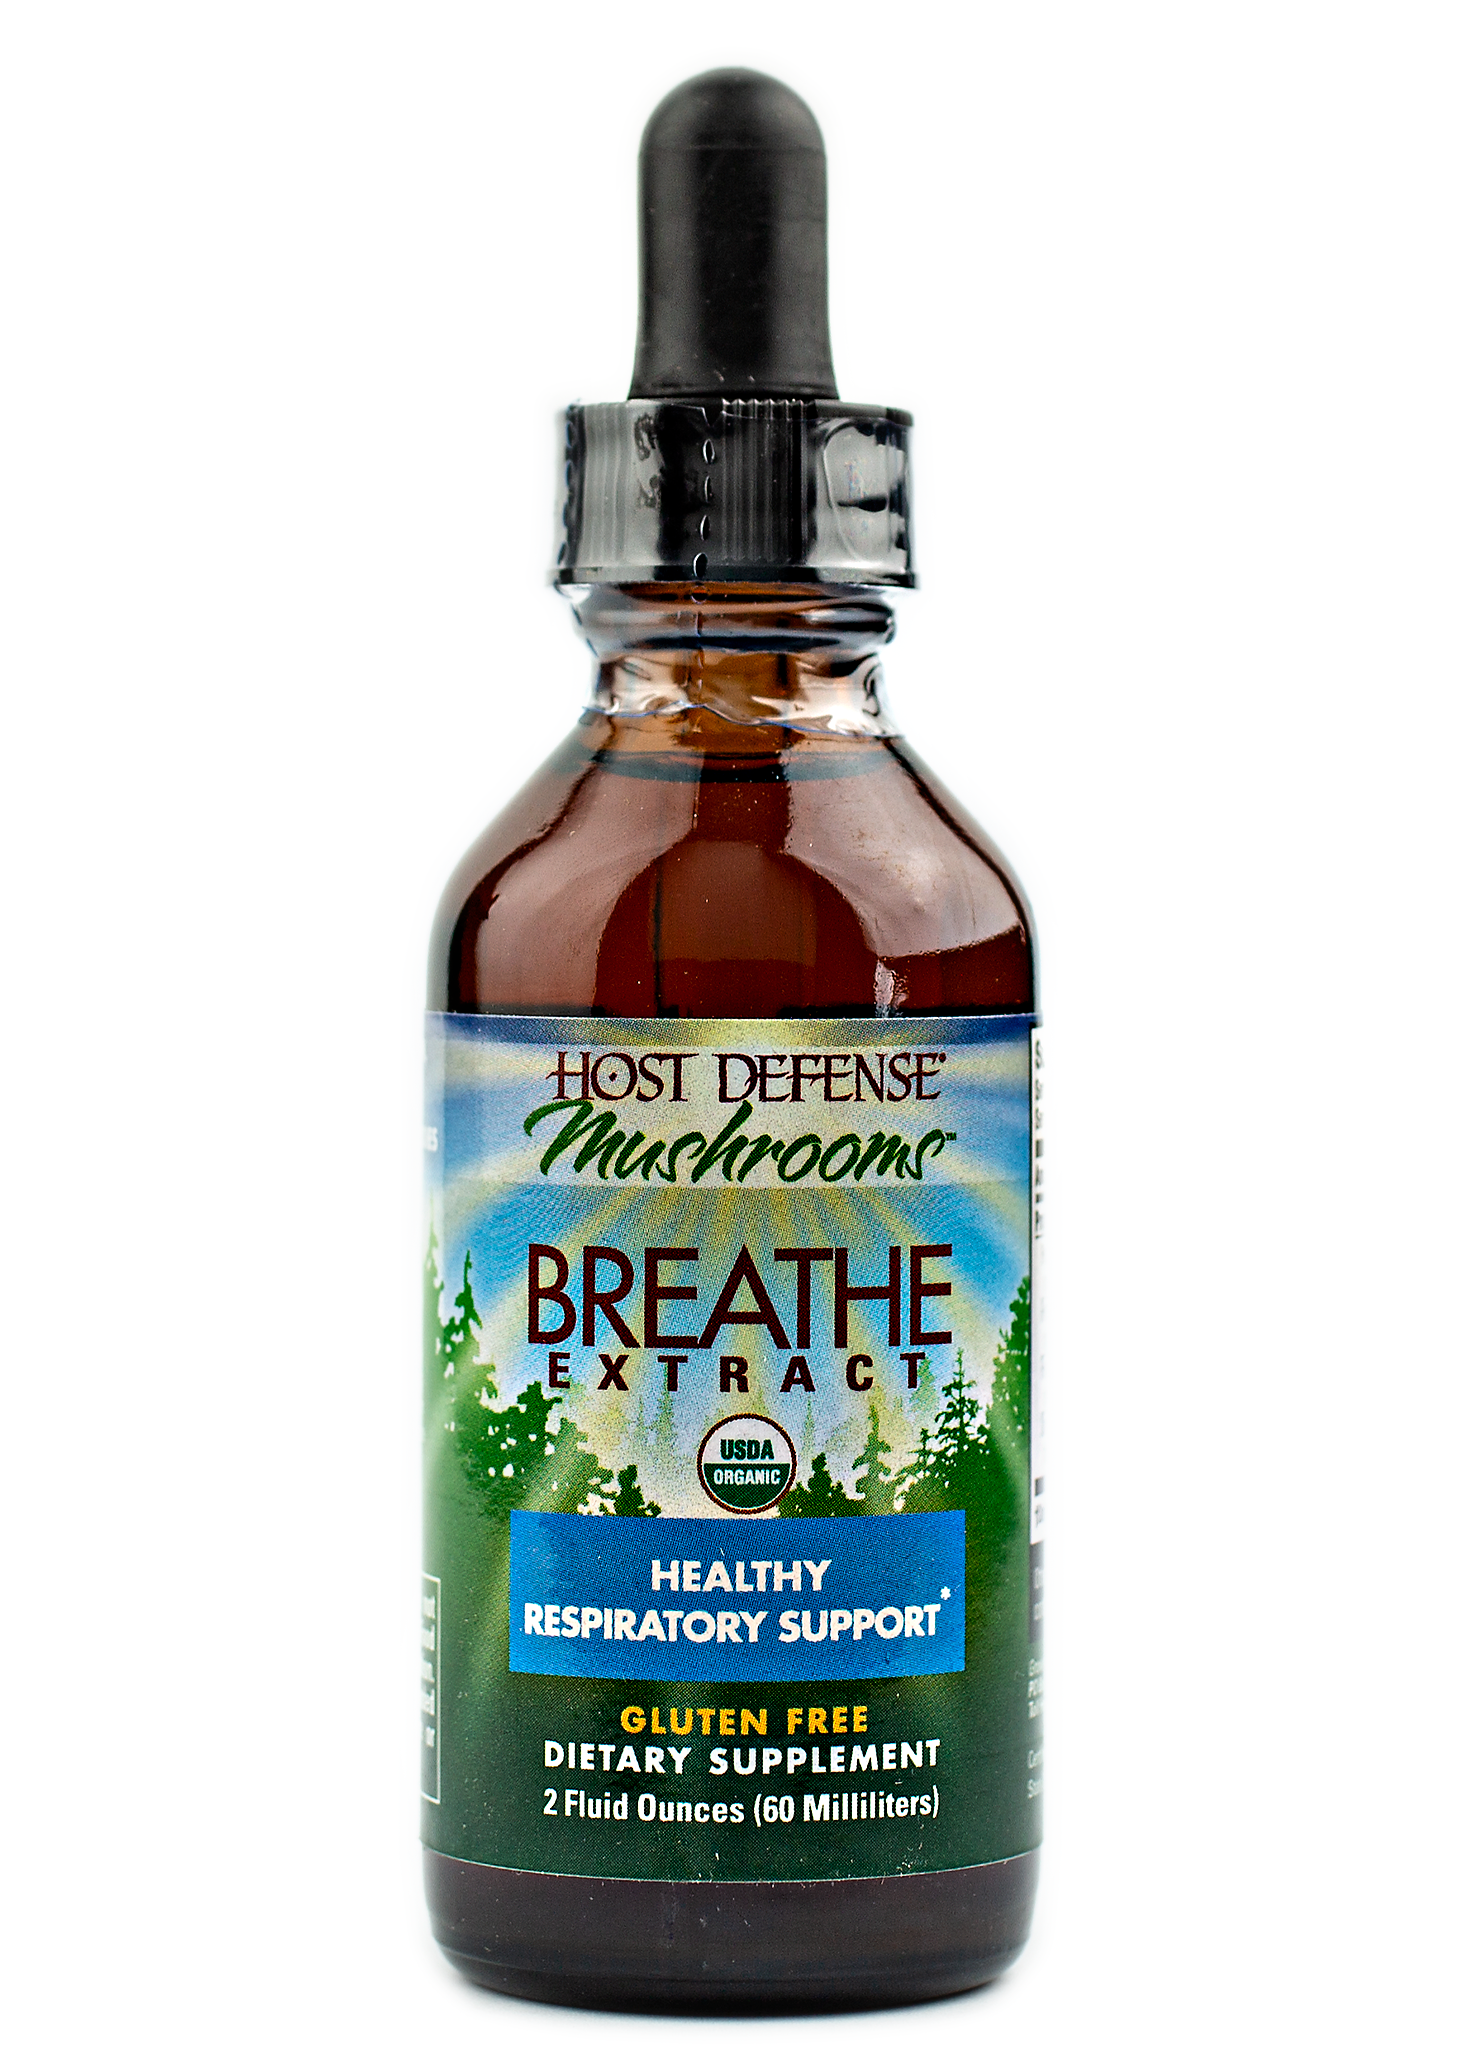 Breathe Extract - Host defense